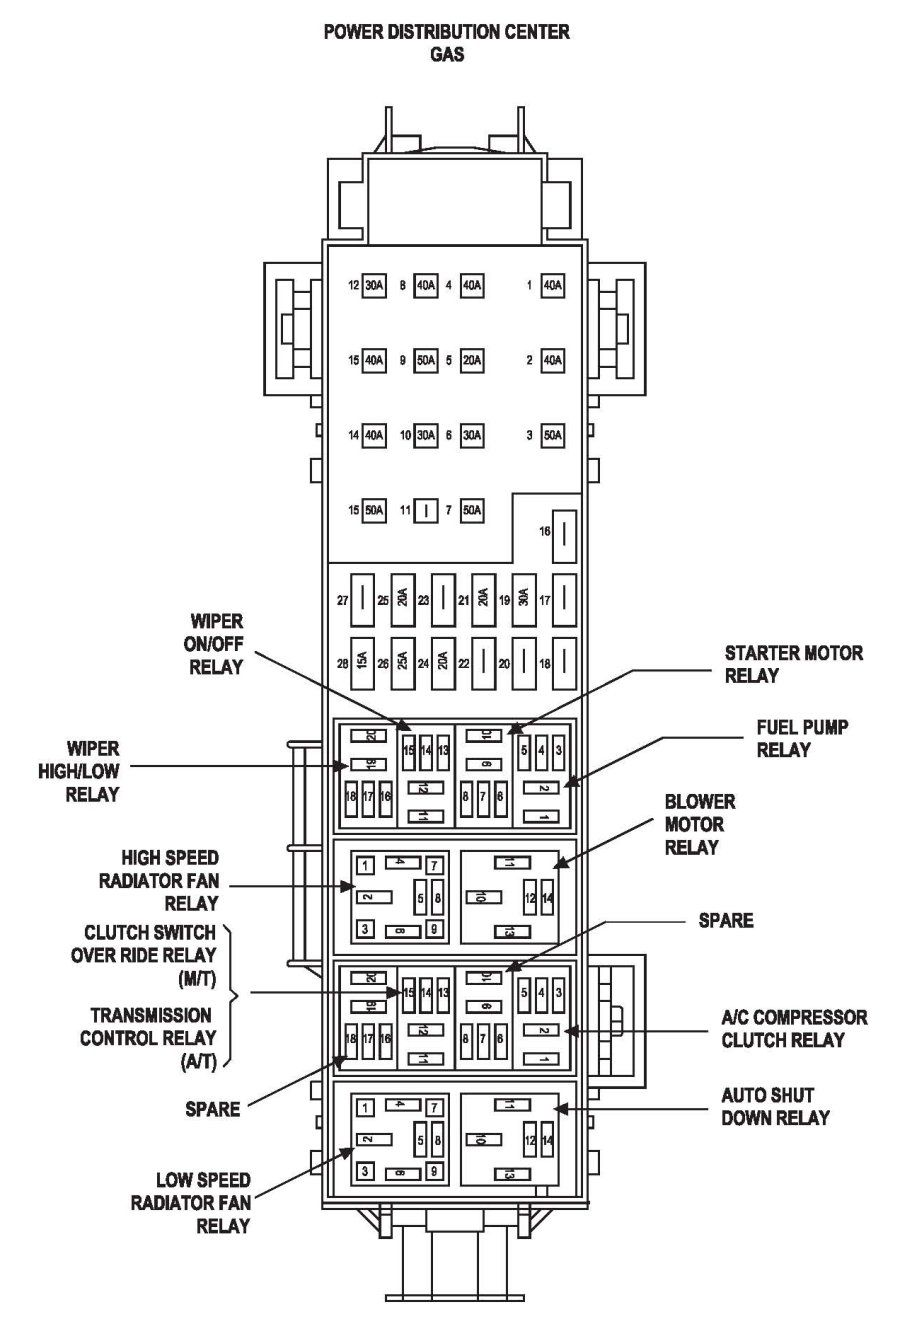 b3536c3739783eb19f827744cc42c3c4 jeep liberty fuse box diagram image details jeep liberty 2006 jeep commander fuse box diagram at readyjetset.co